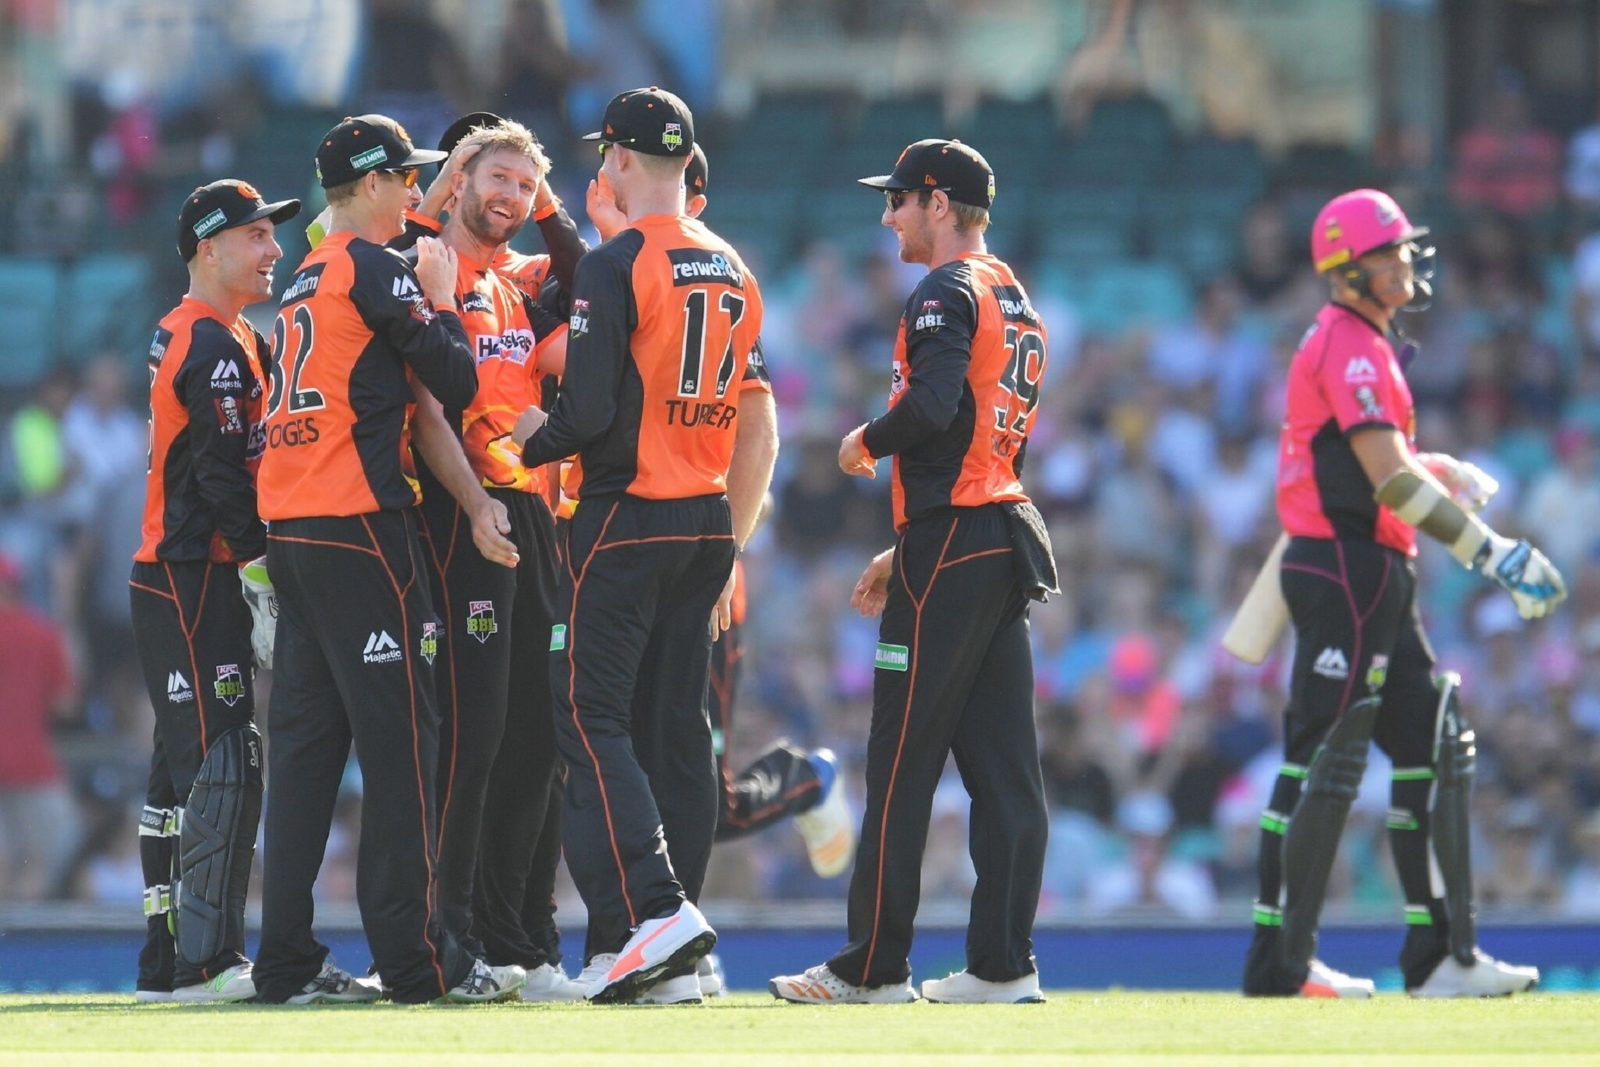 Big Bash League - Perth Scorchers vs Sydney Sixers, Burswood, Western Australia